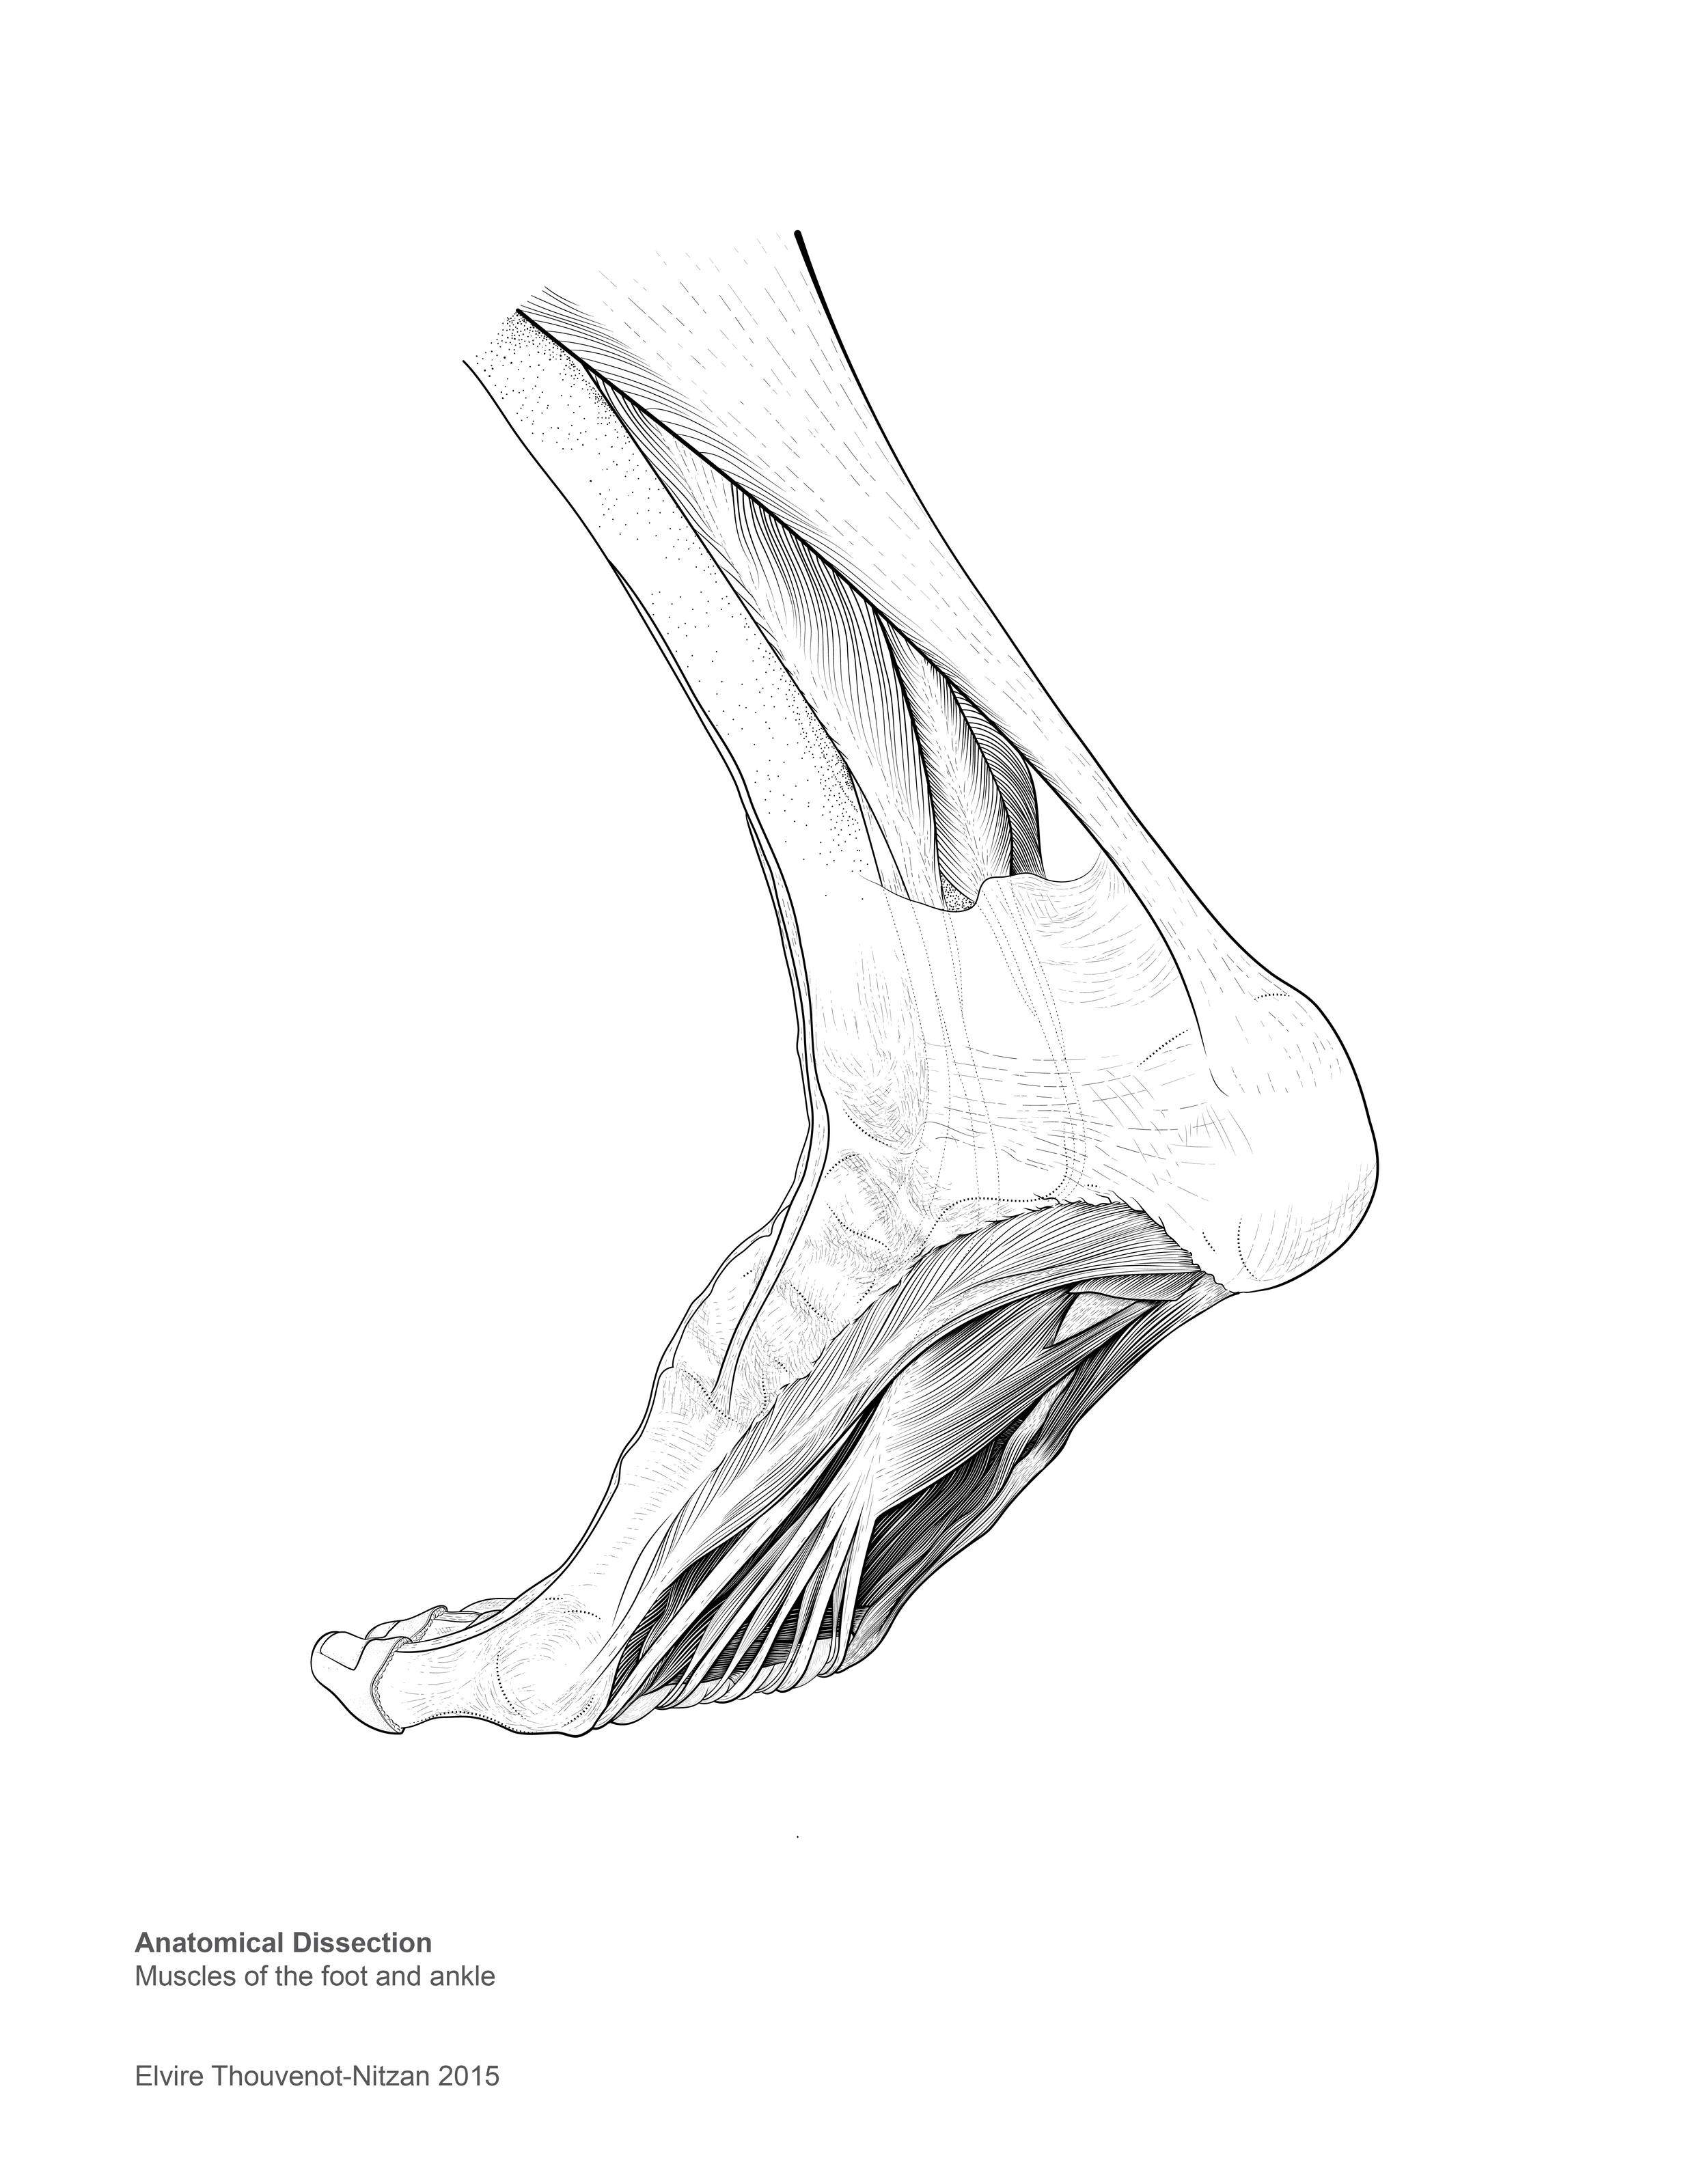 Elvire Thouvenot Dissection DrawingUnlabelled 2.png